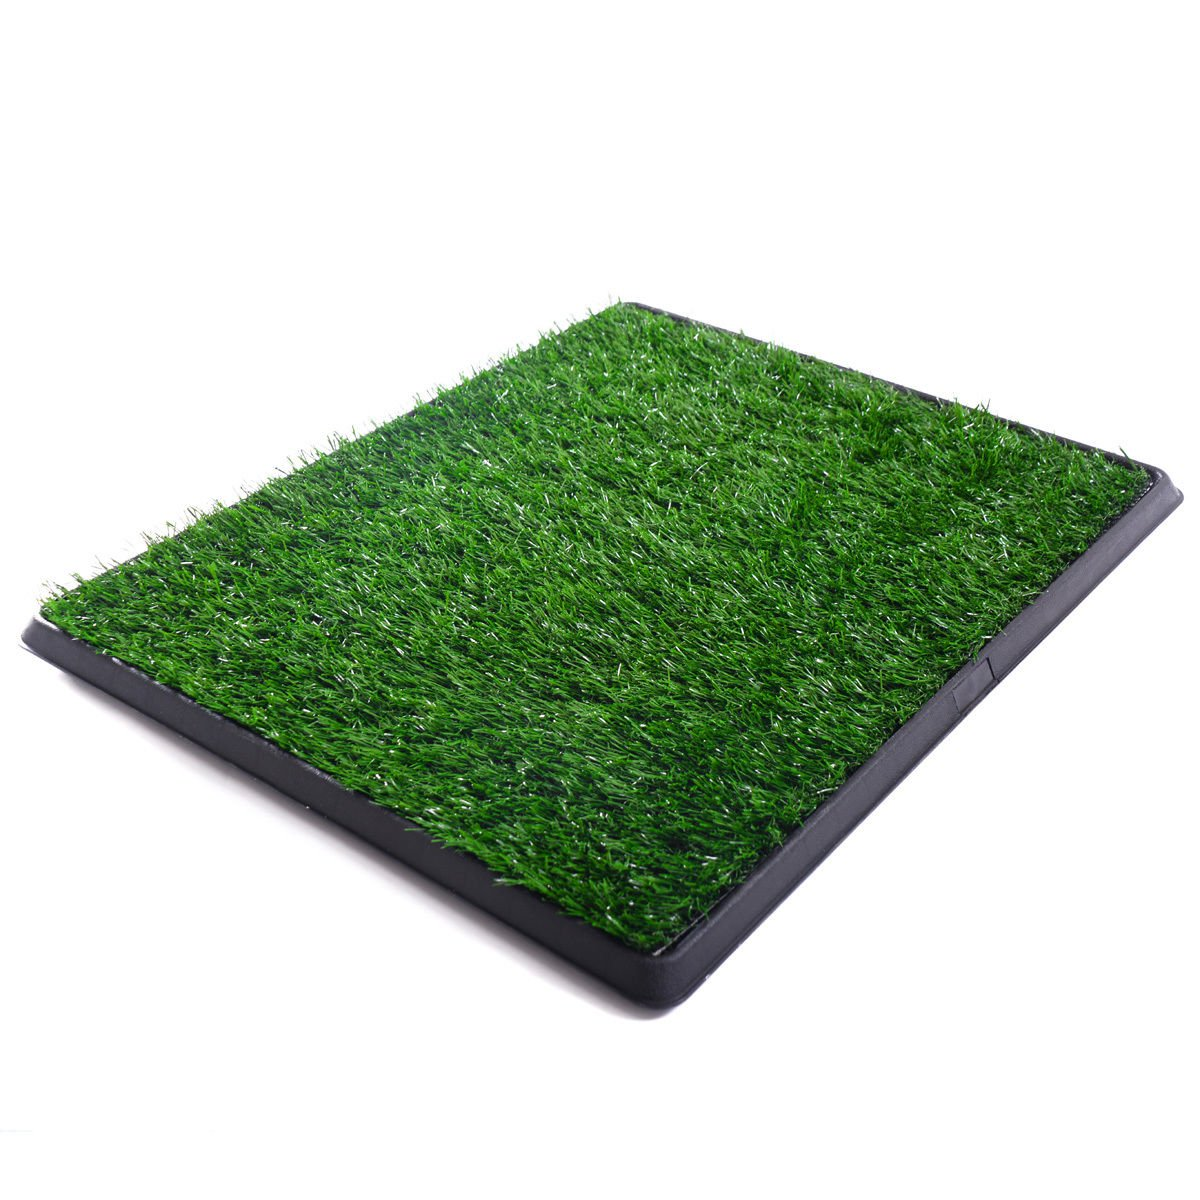 20'' X 25'' Pet Potty Dog Training Grass Puppy Pad Washable Synthetic Grass Pad Drain Tray